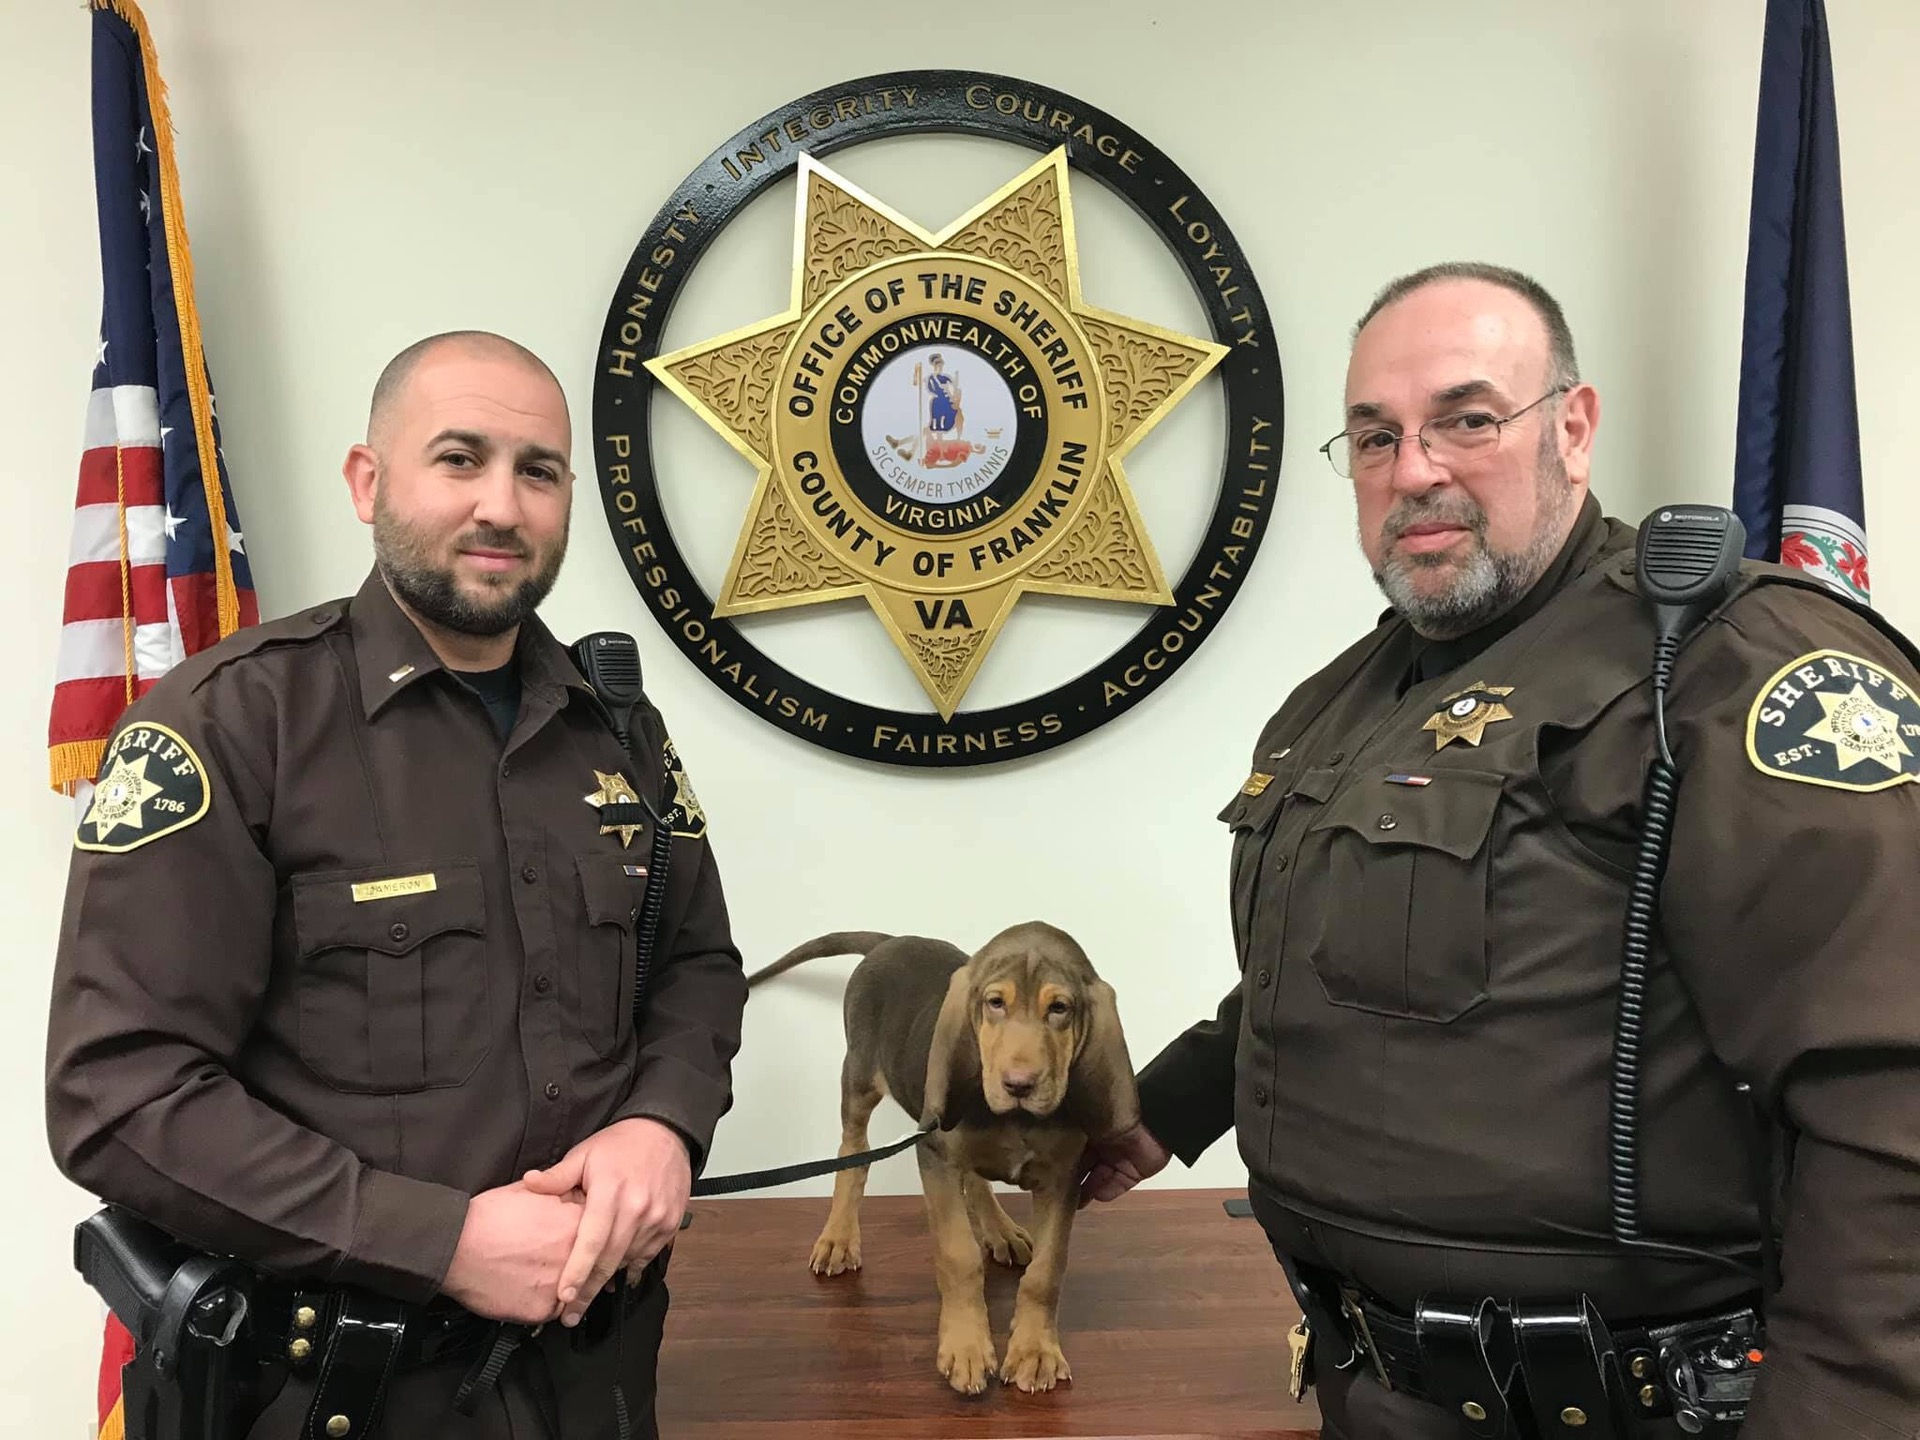 Franklin County Sheriff's Office introduces new K9, asks